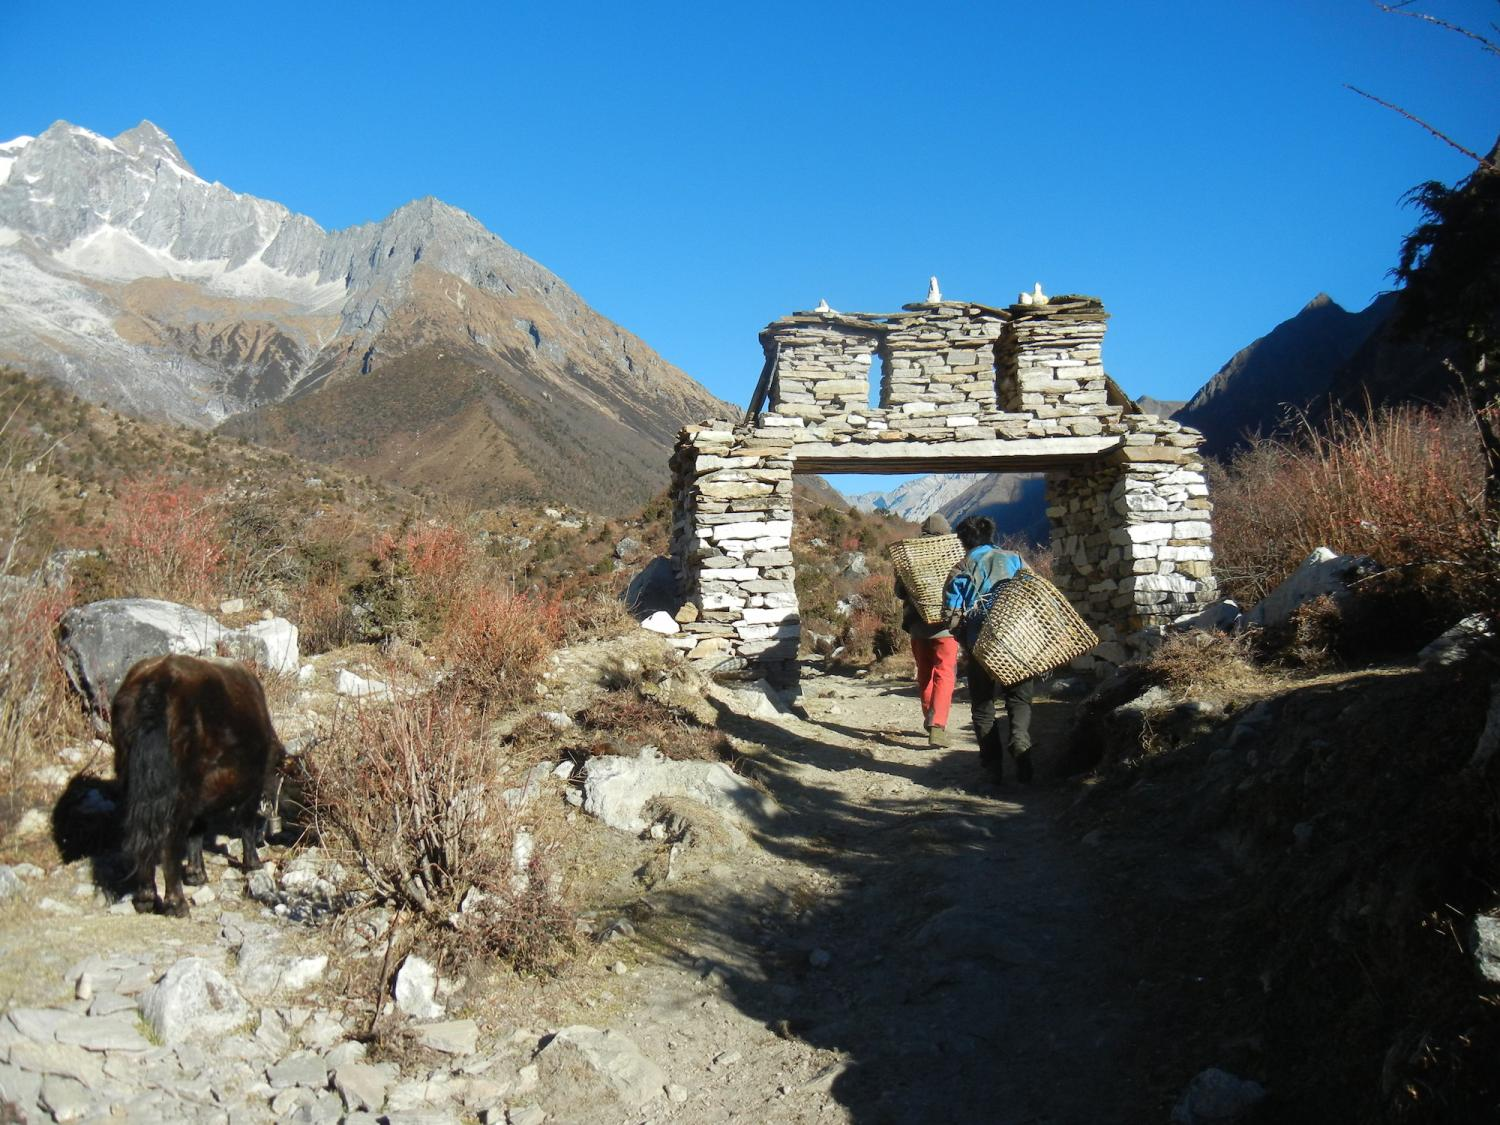 Firewood gatherers leaving the upper gate of Sama village while a yak grazes on the tundra